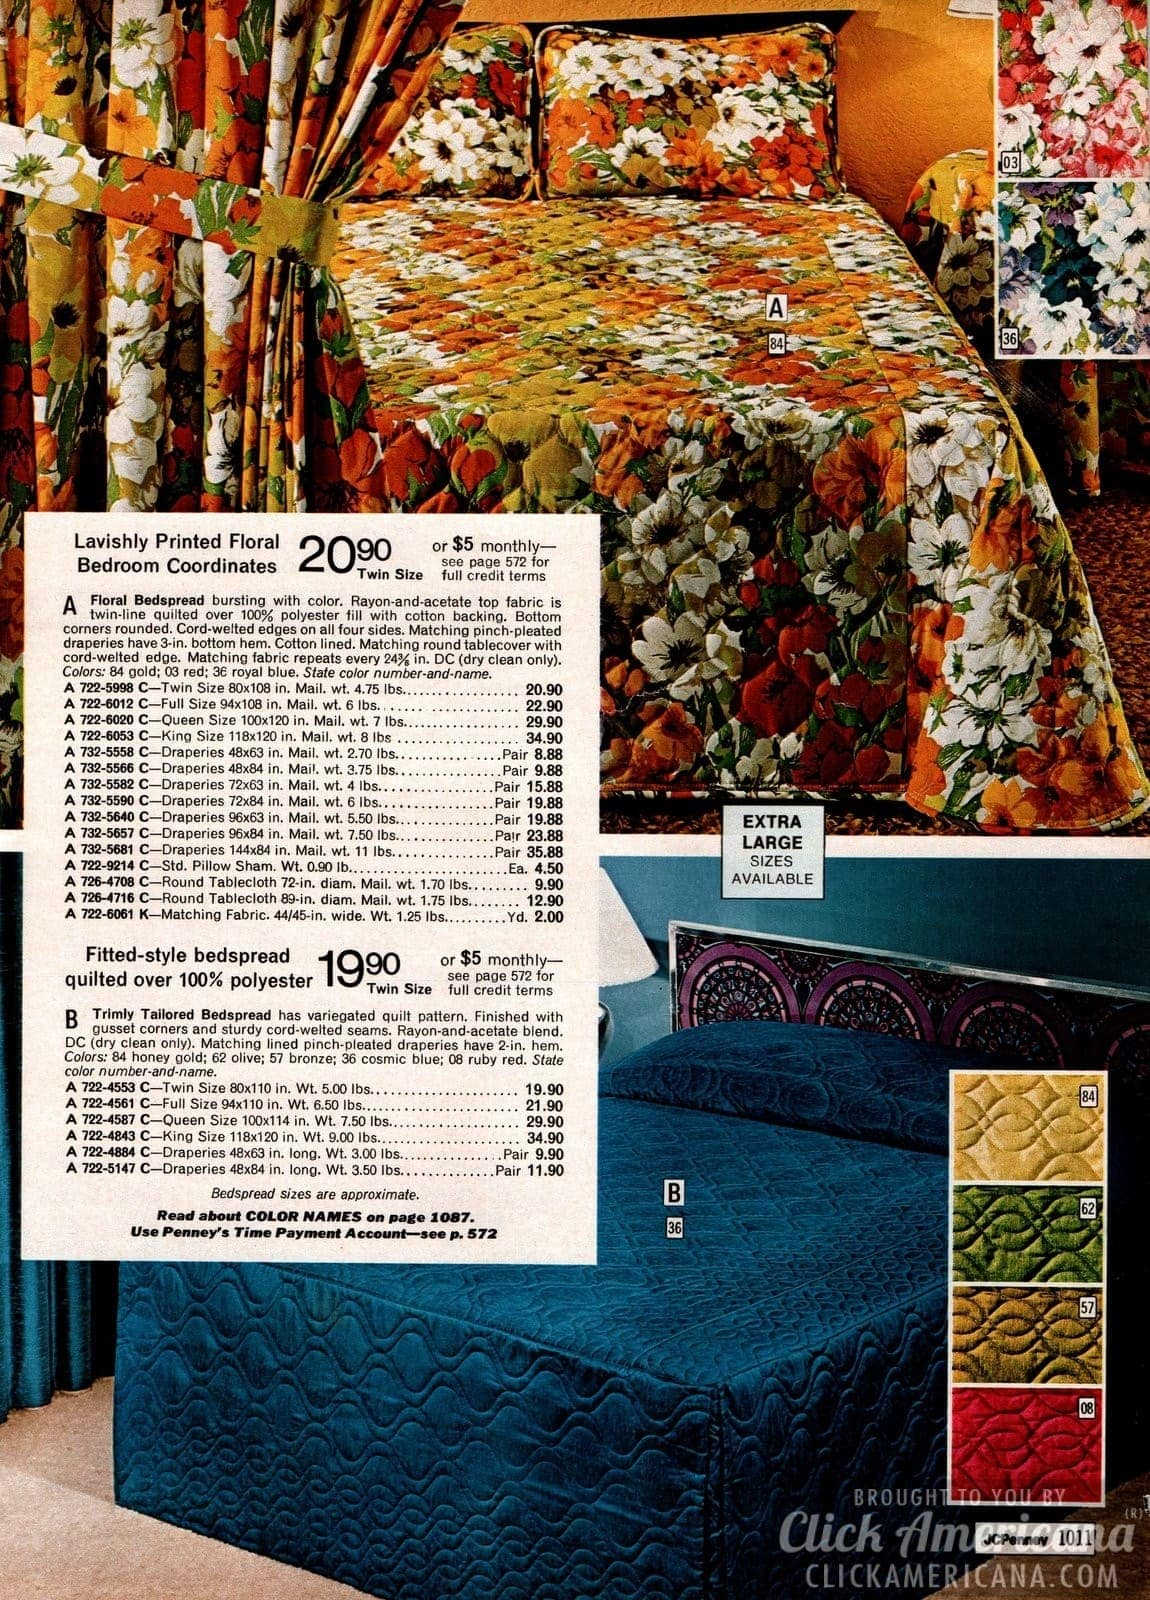 Printed floral bedroom coordinates & fitted-style polyester bedspread